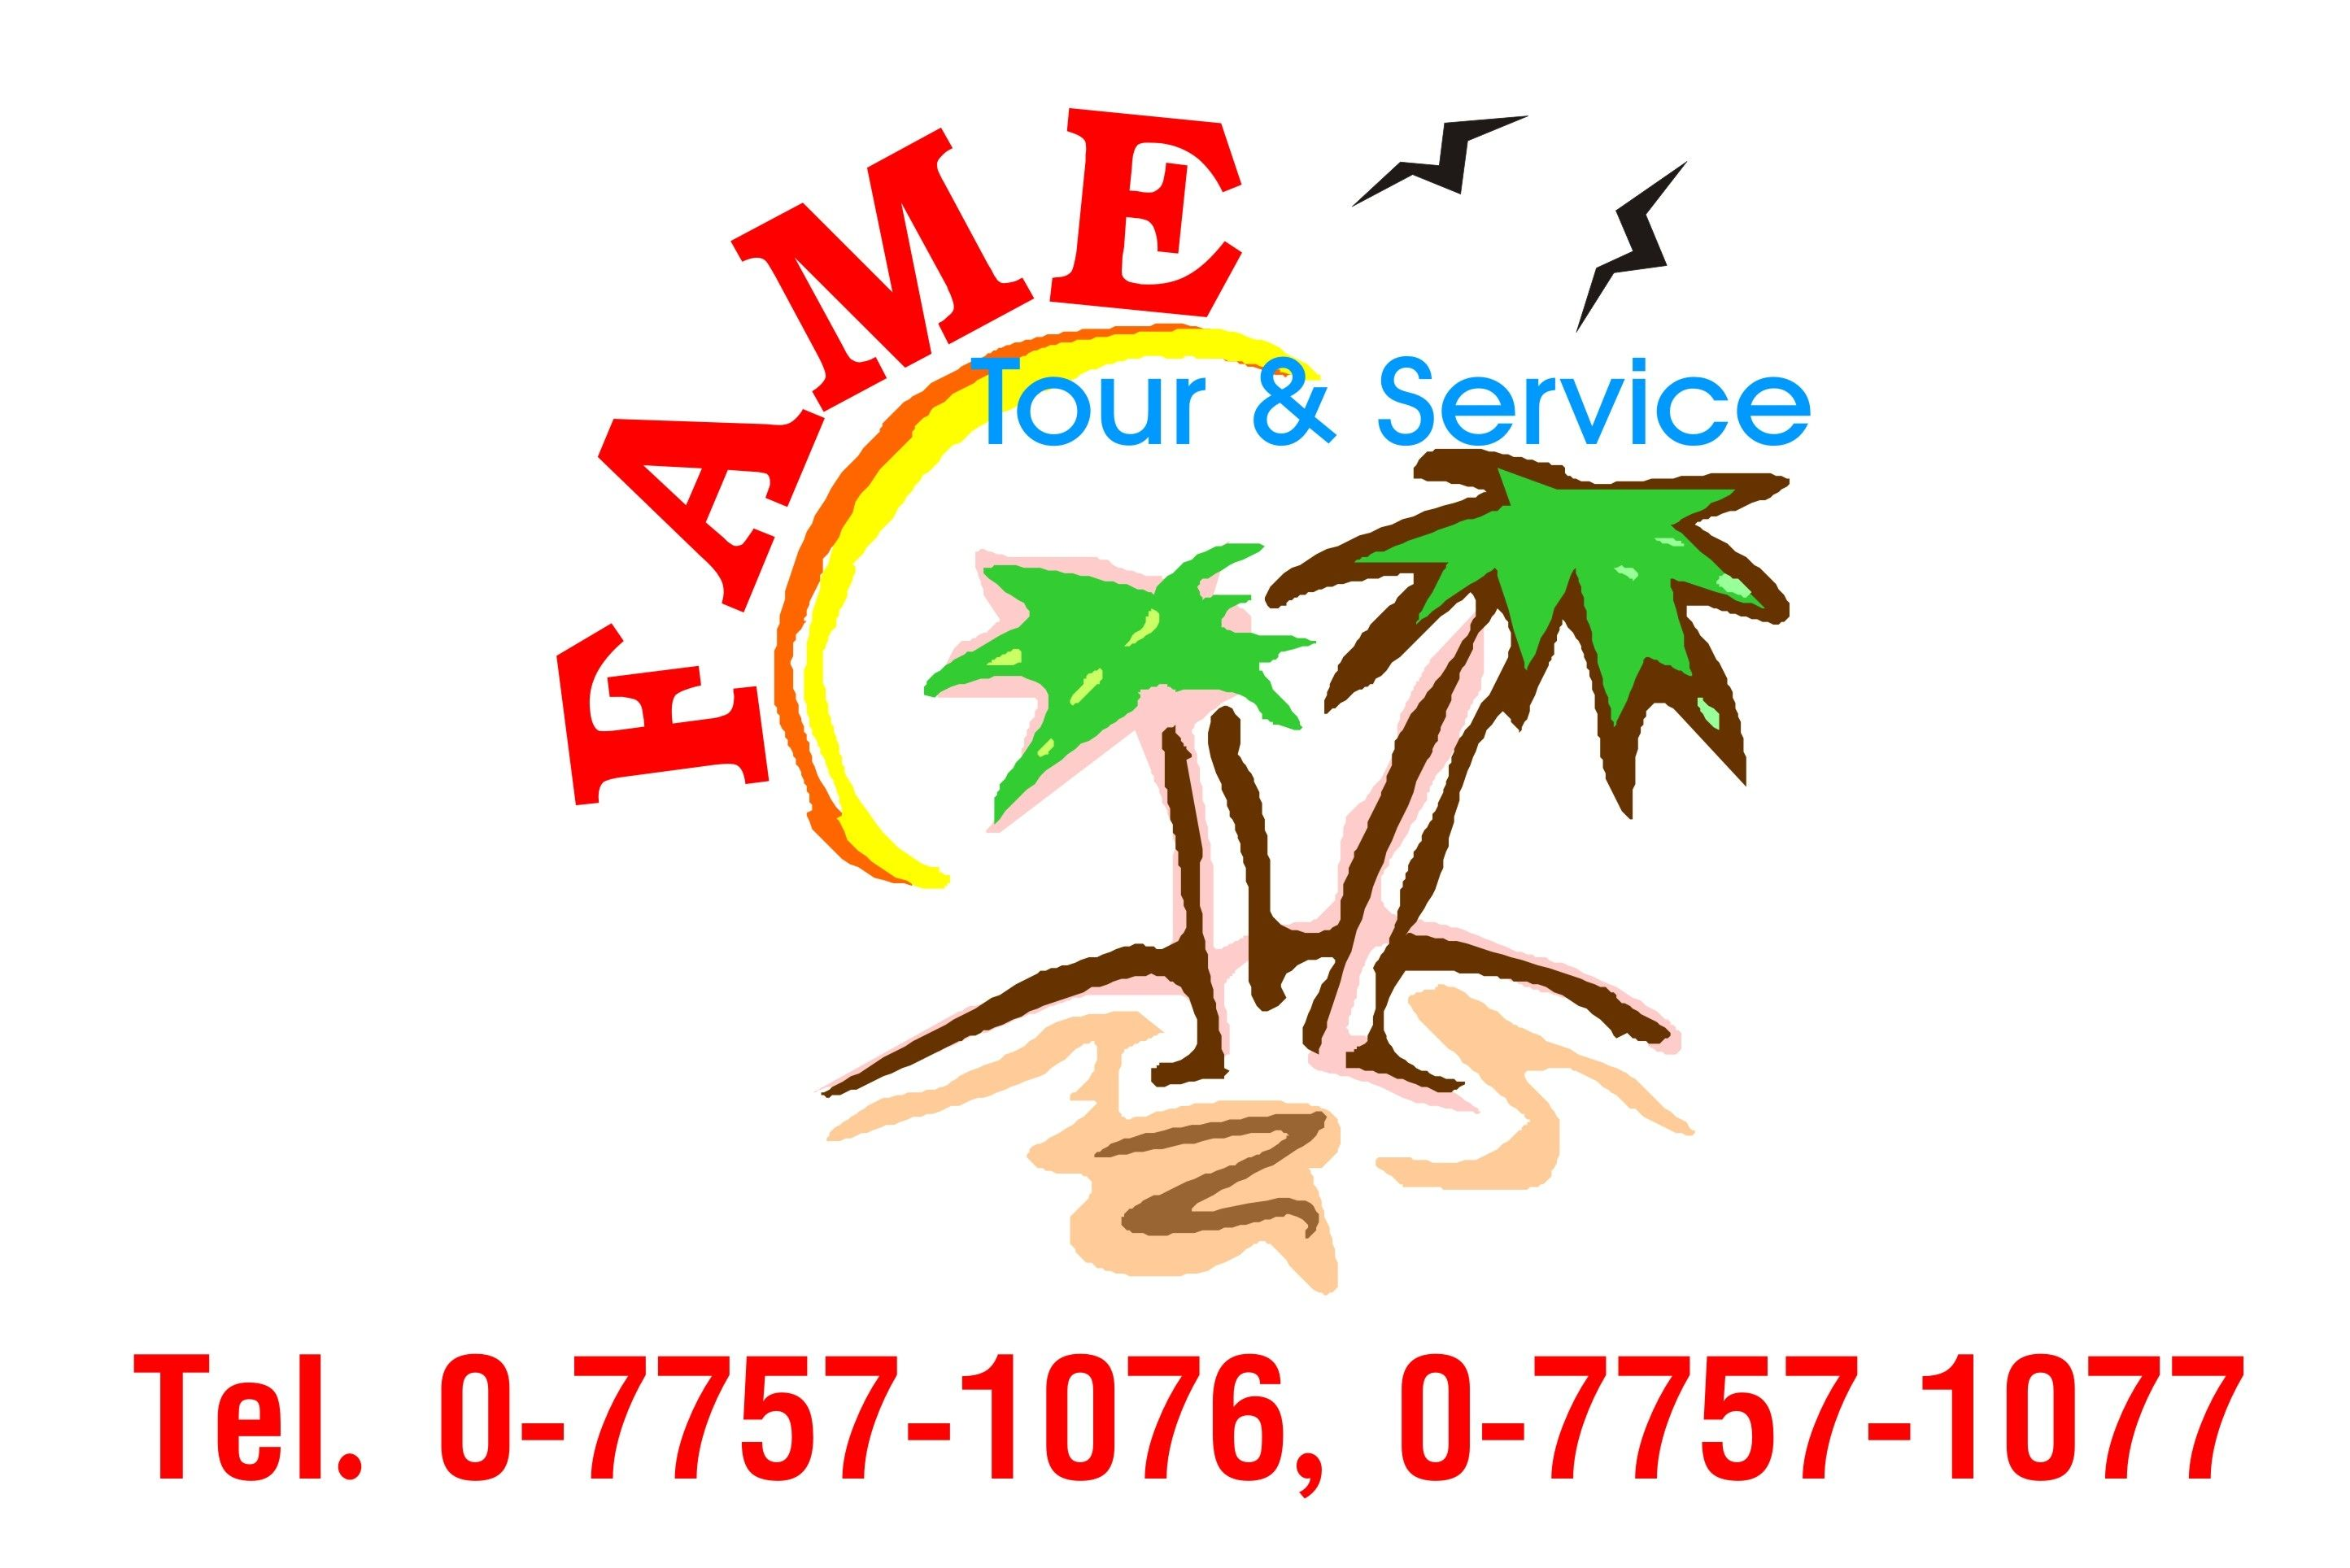 Fame Tours & Services logo